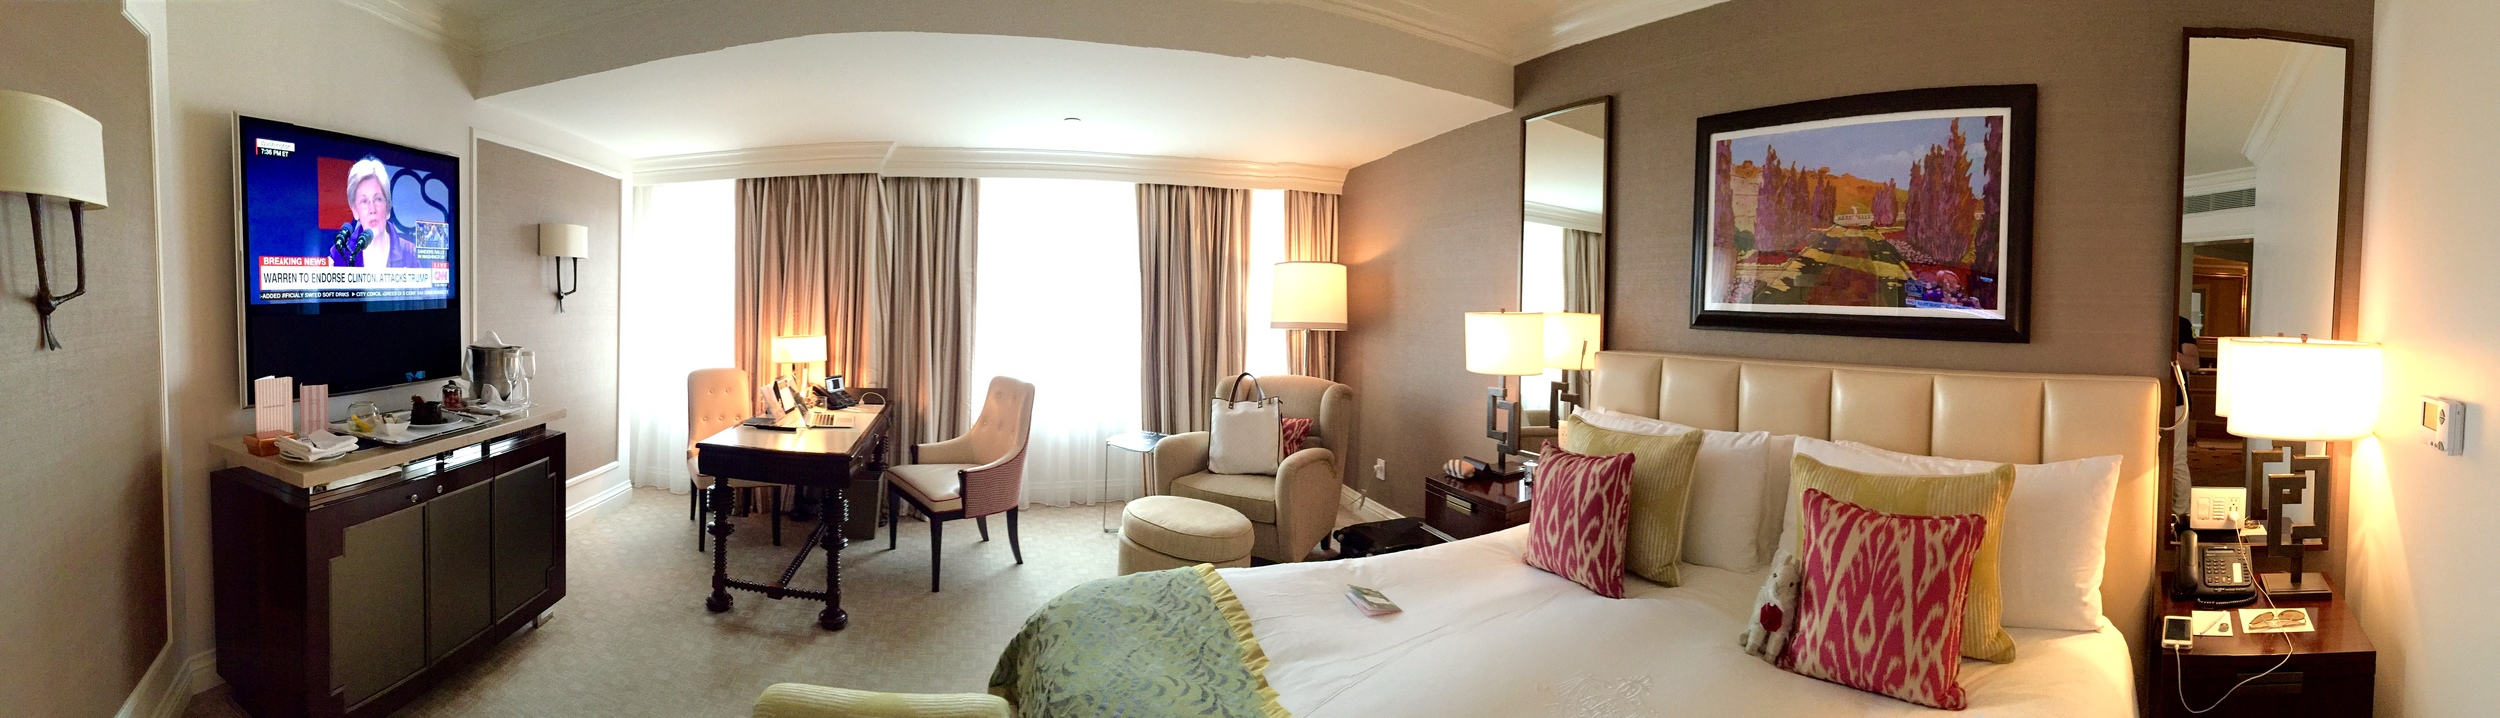 Our Suite at The Beverly Hills Hotel, Can You Spot My Little Travel Companion in the Photo?